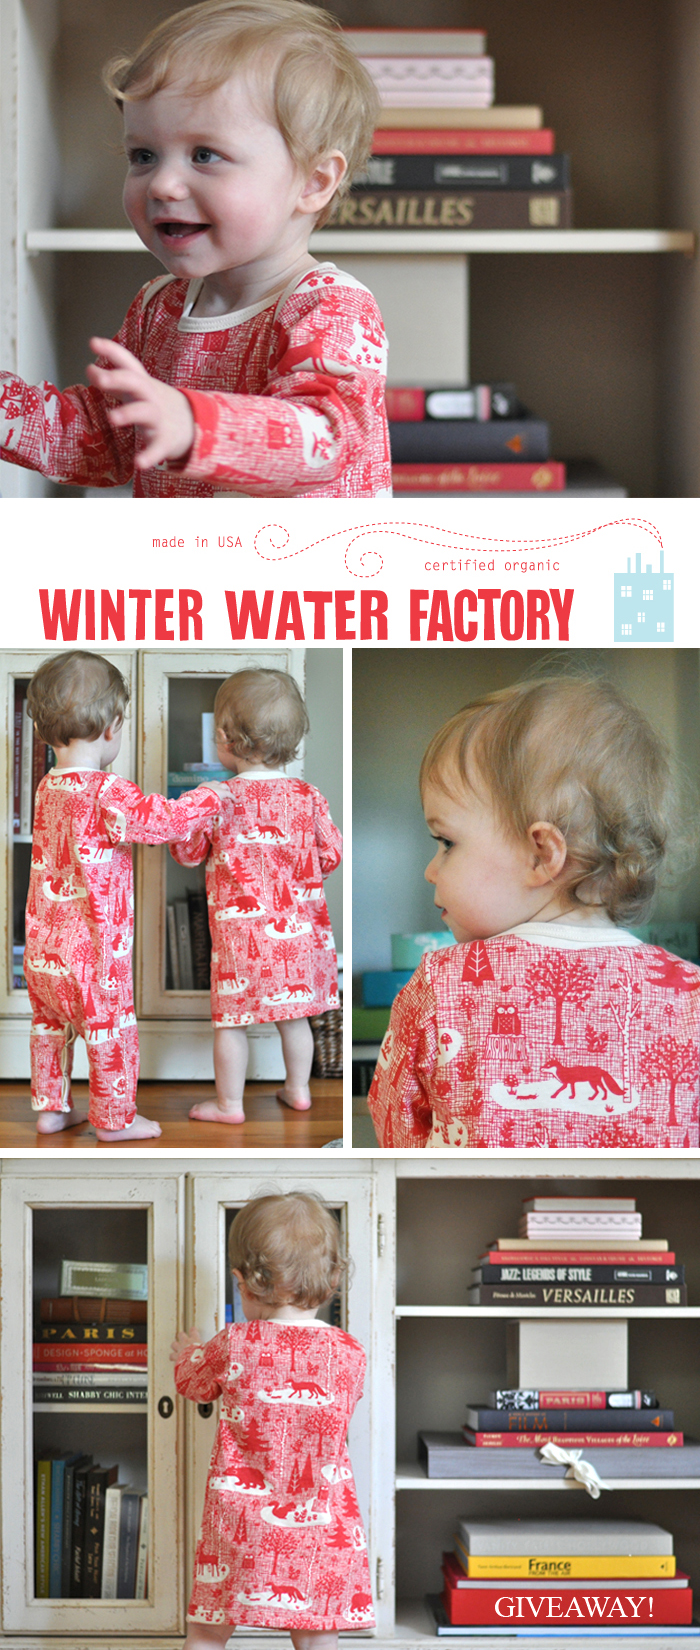 winter-water-factory-fall-2013-giveaway